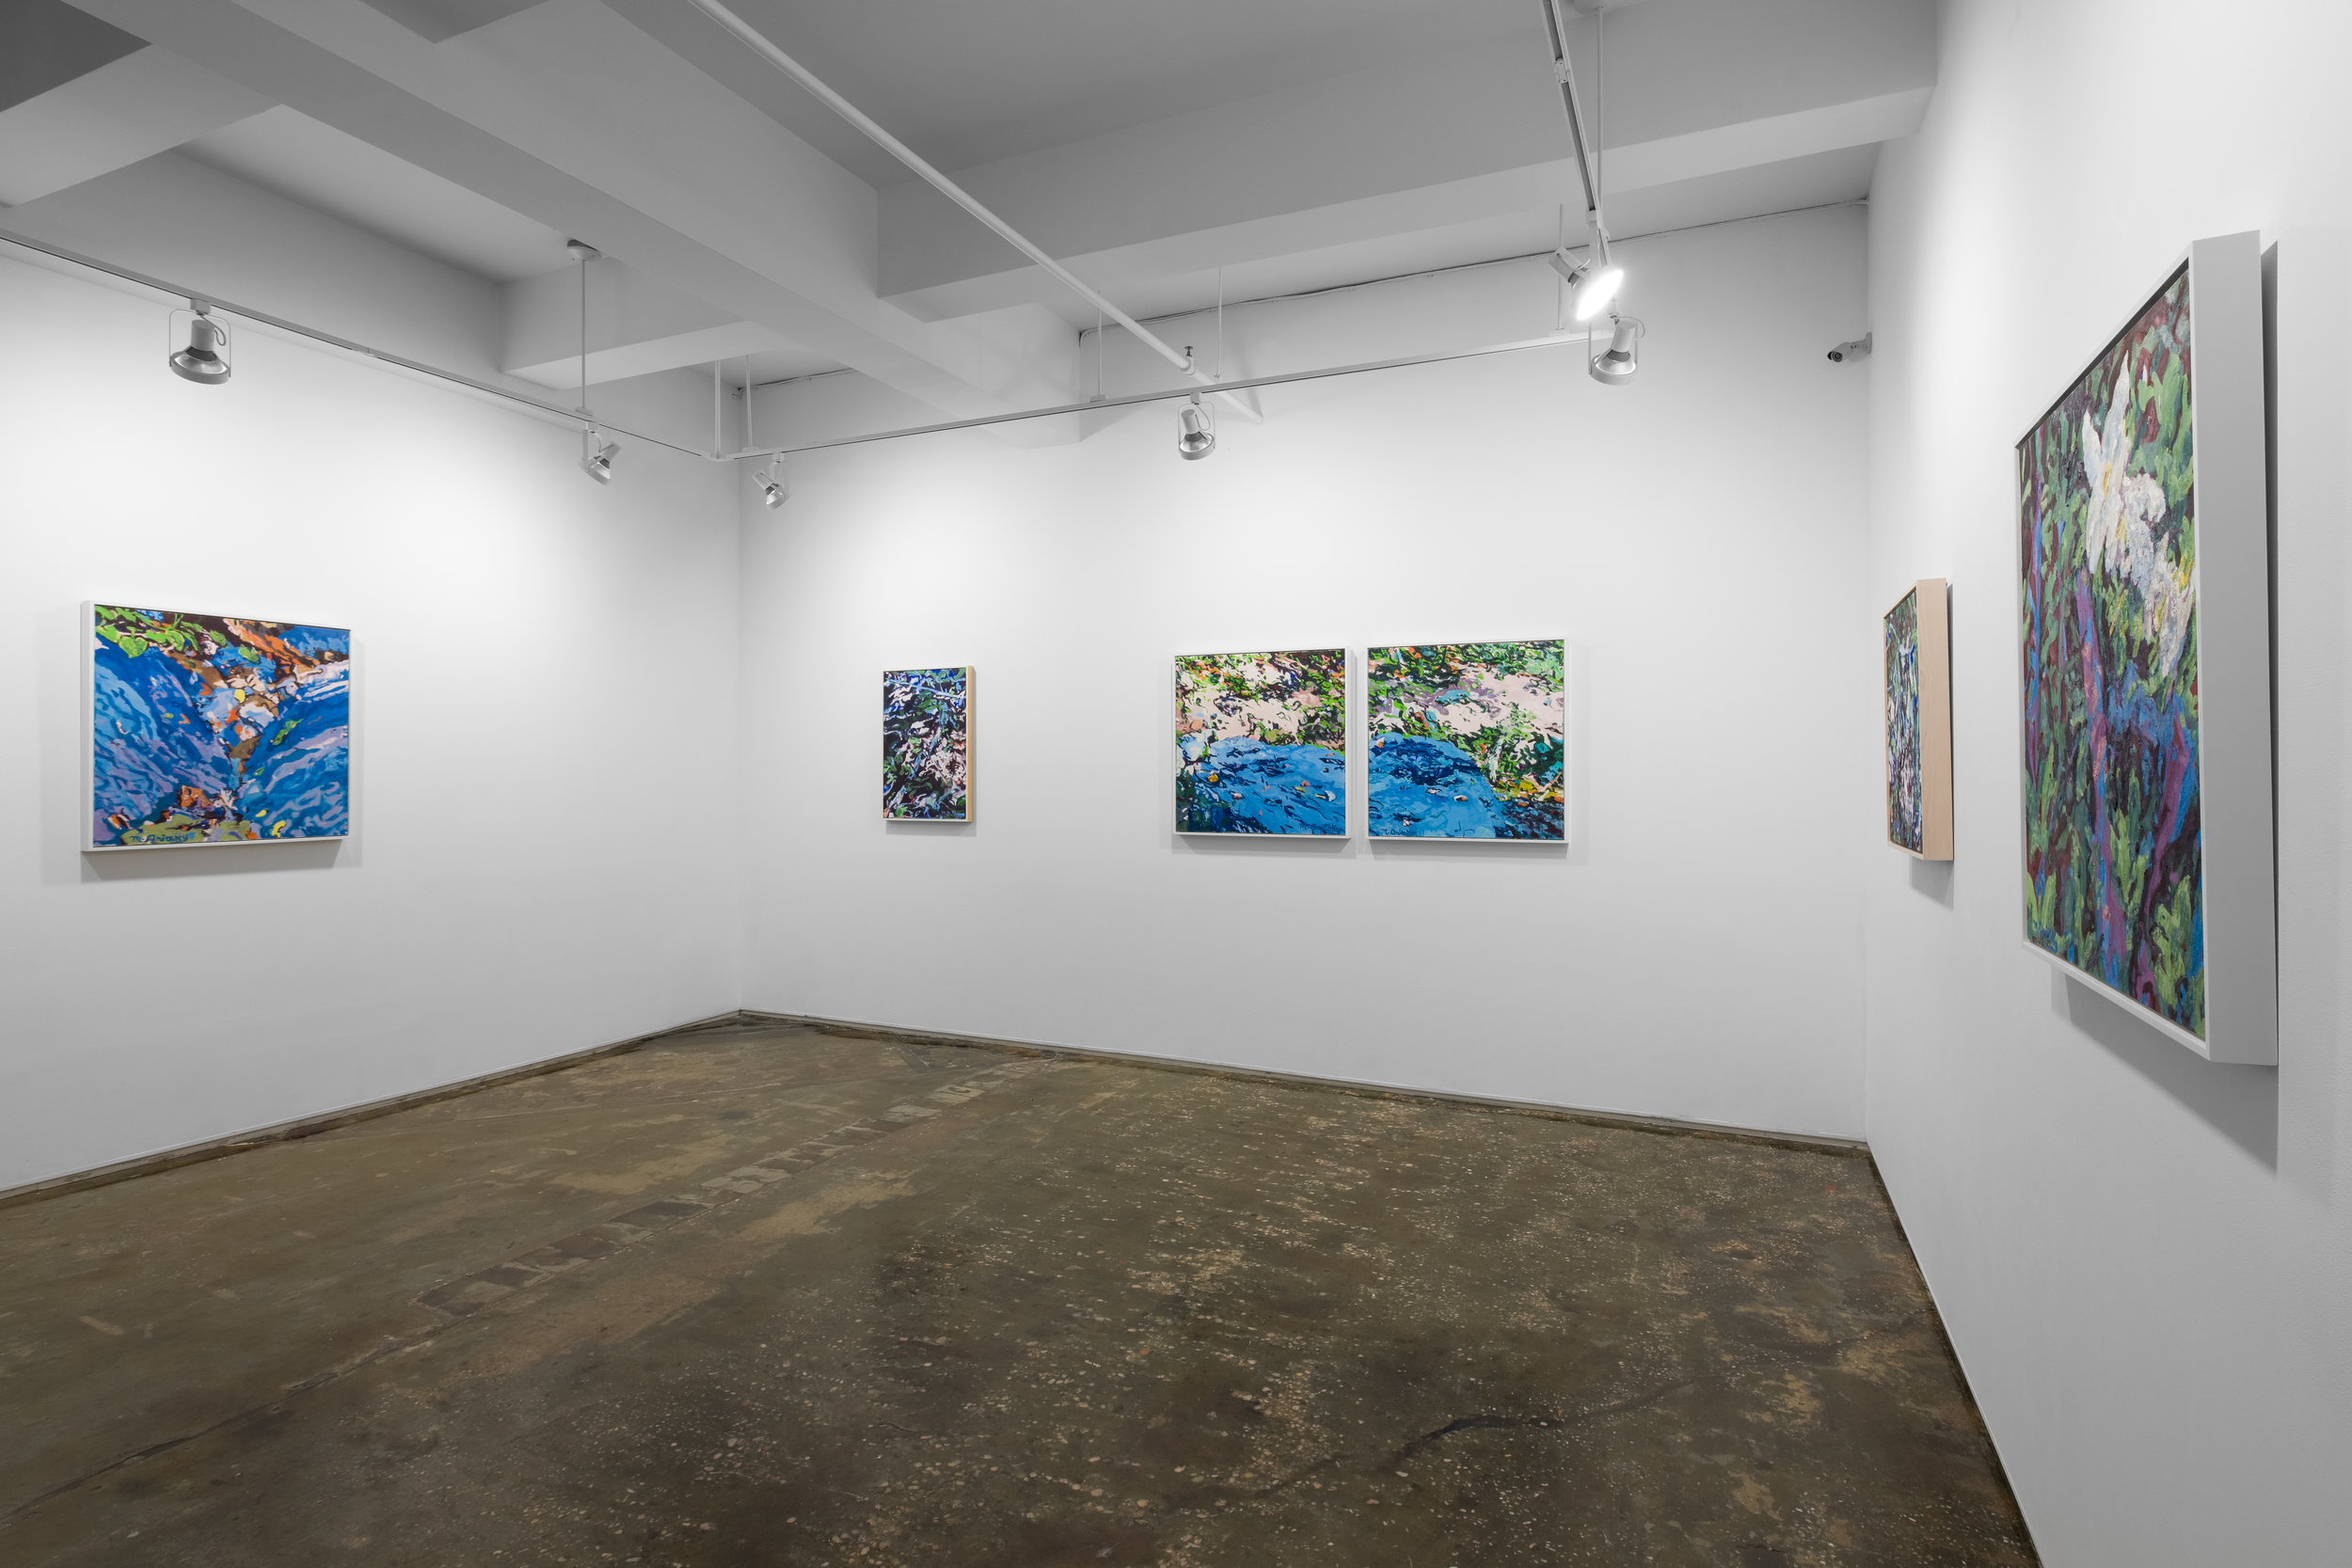 Installation View Photography by Sebastian Bach